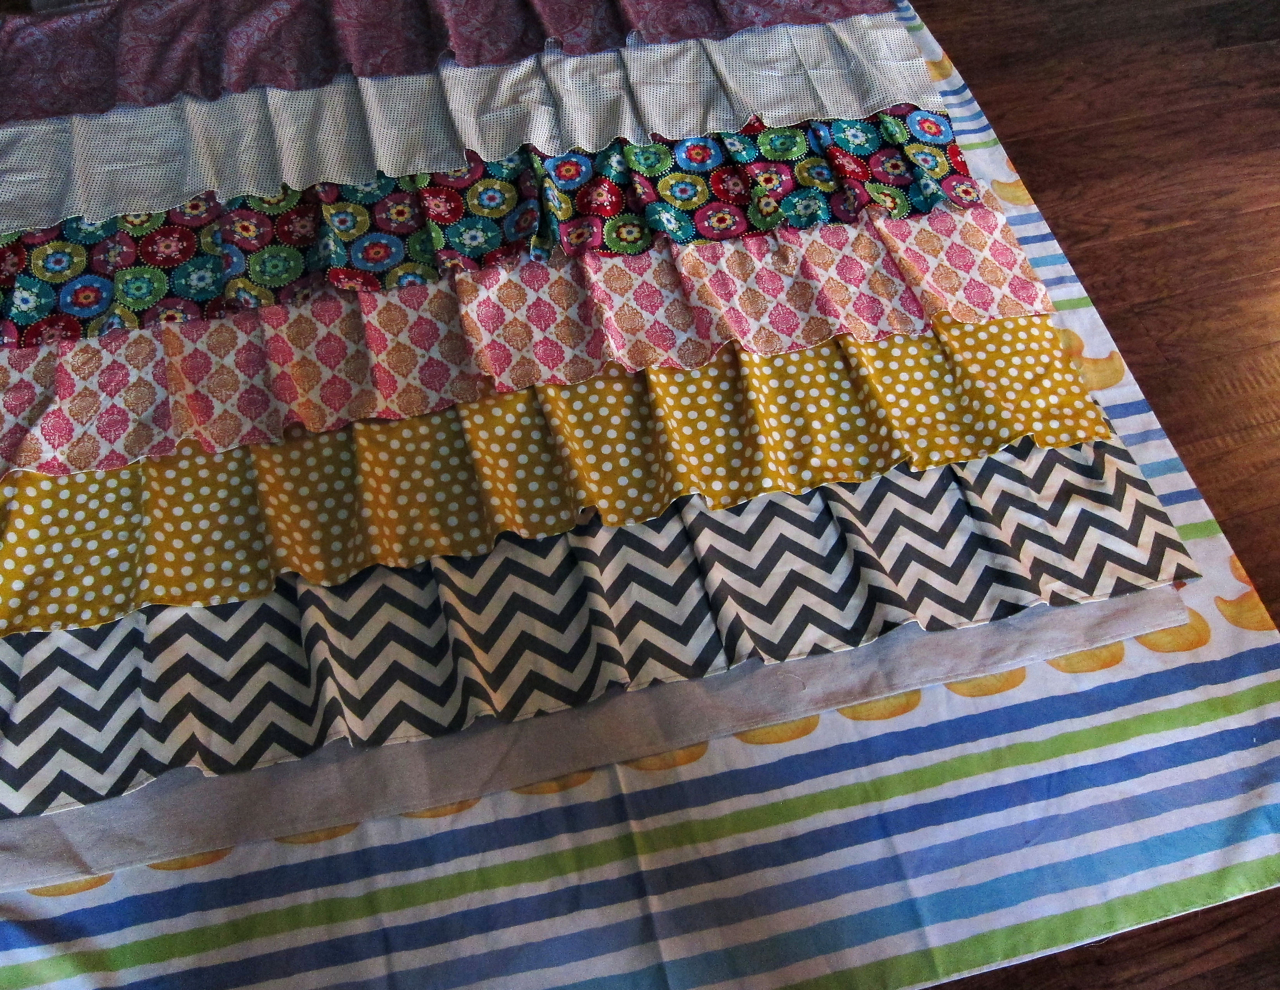 Shower curtain quilt pattern - I Decided To Line Burlap And Create A Ruffle Using That For The Bottom Of My Shower Curtain I Decided That The Contrast In Fabrics Would Look Good